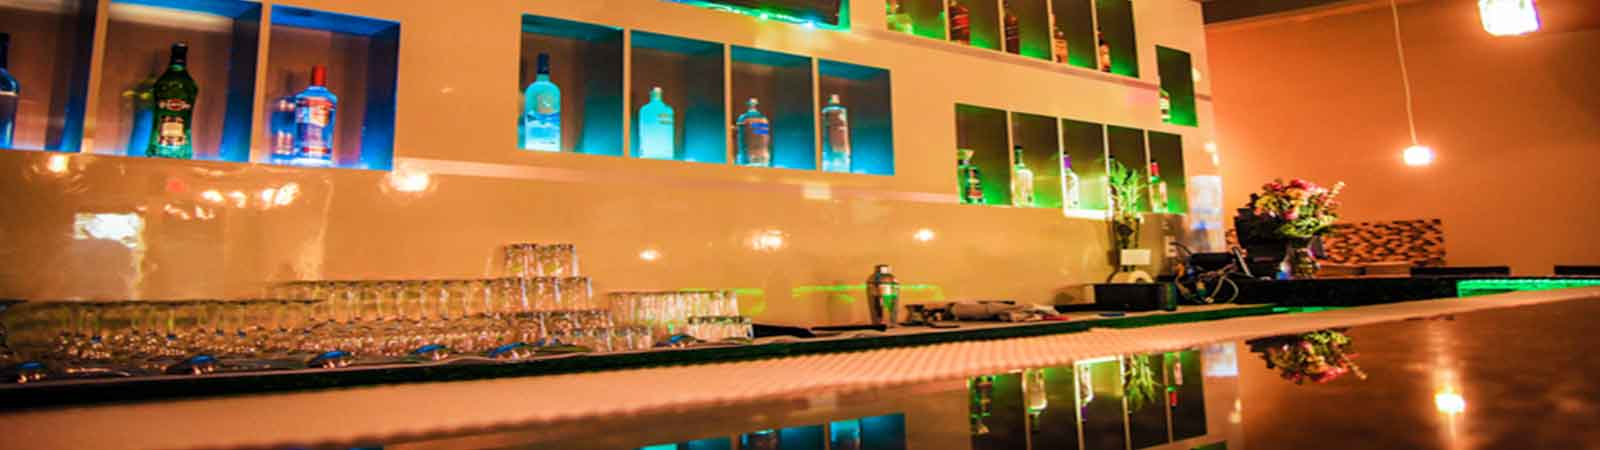 view of bar with liquor bottles